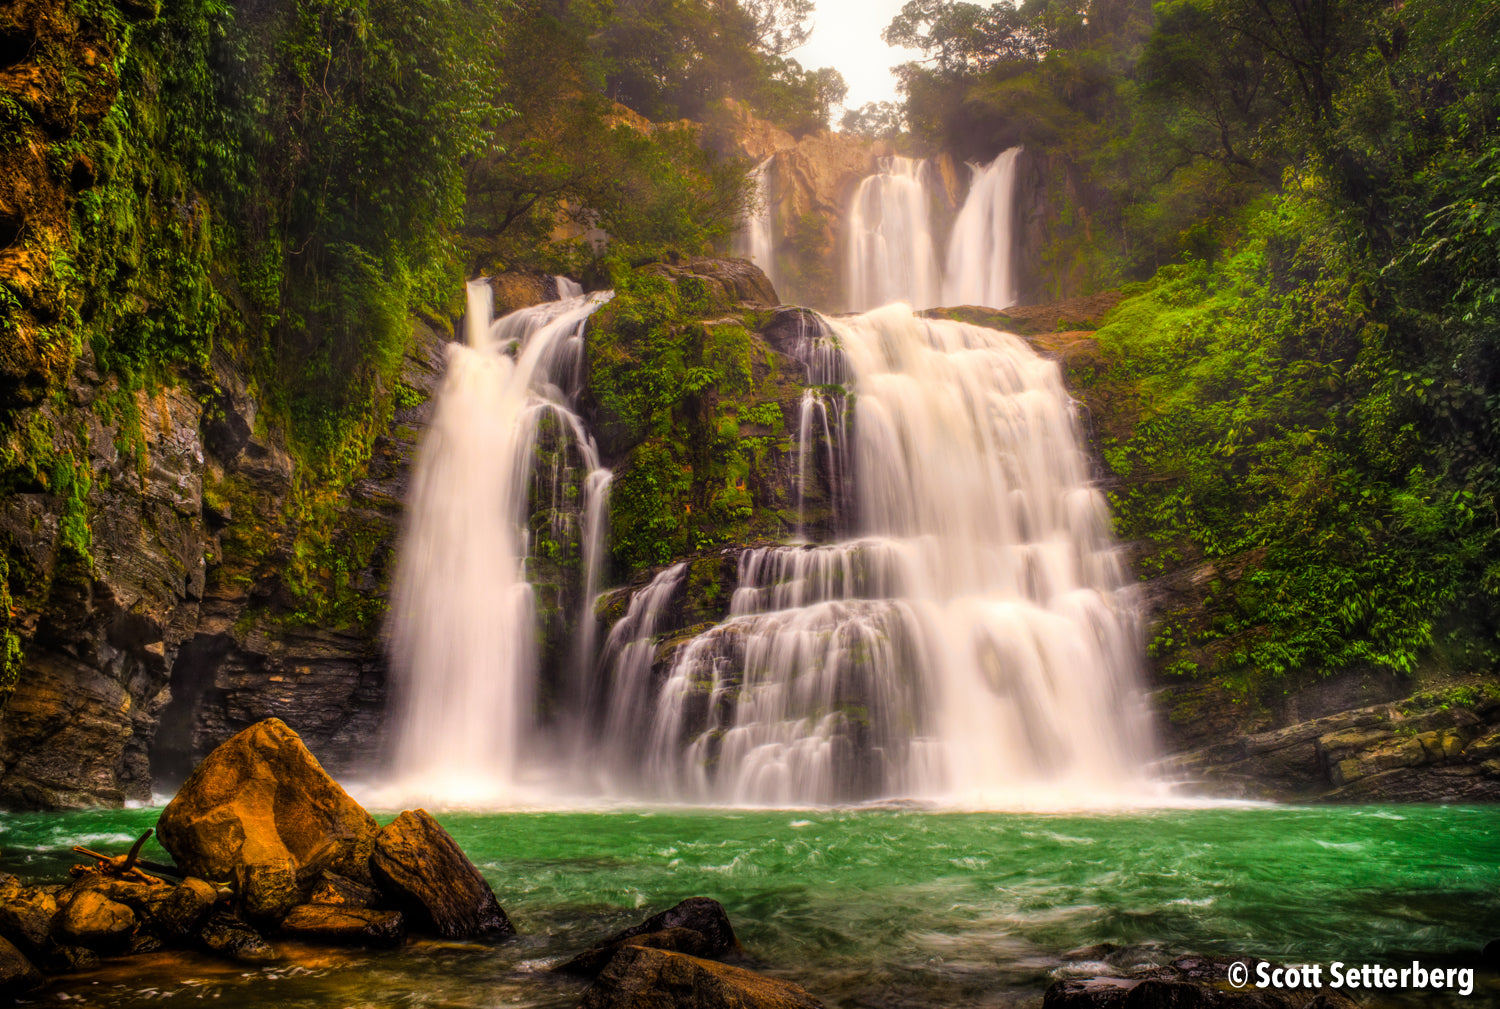 Nauyaca Waterfalls in Costa Rica